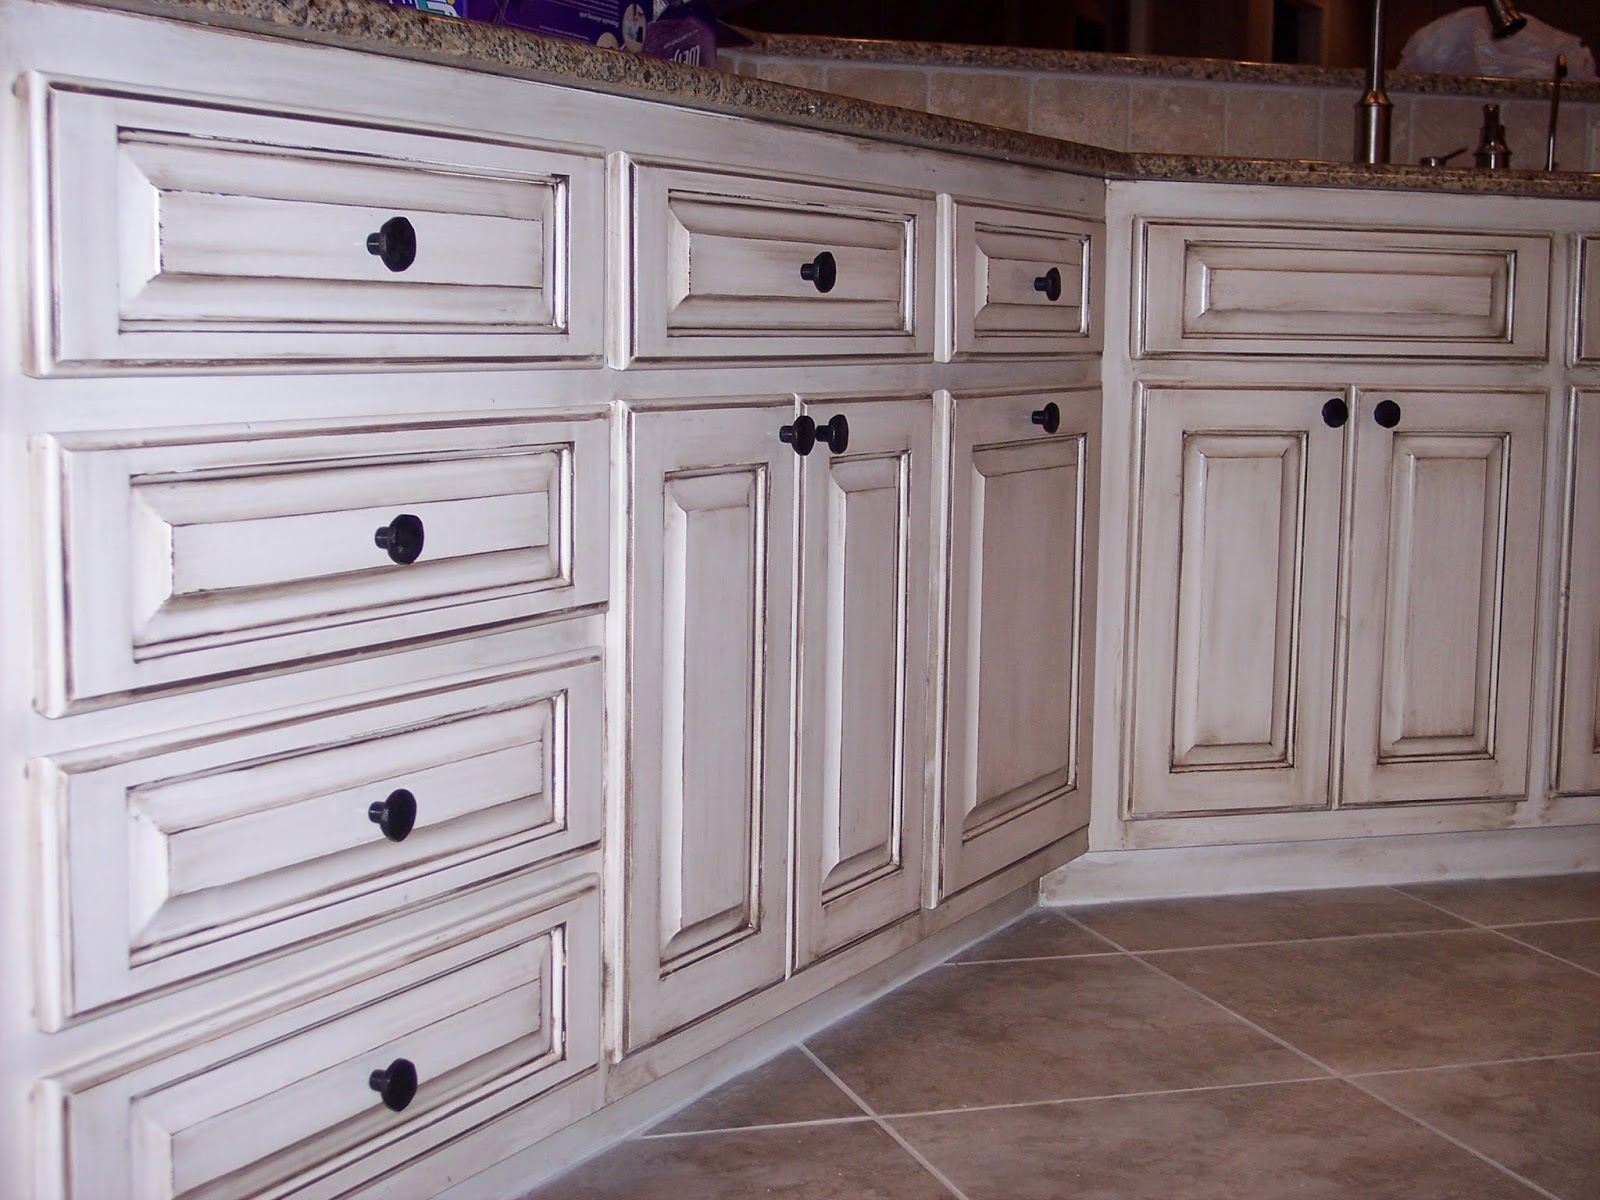 Antique Paint Finishes For Kitchen Cabinets